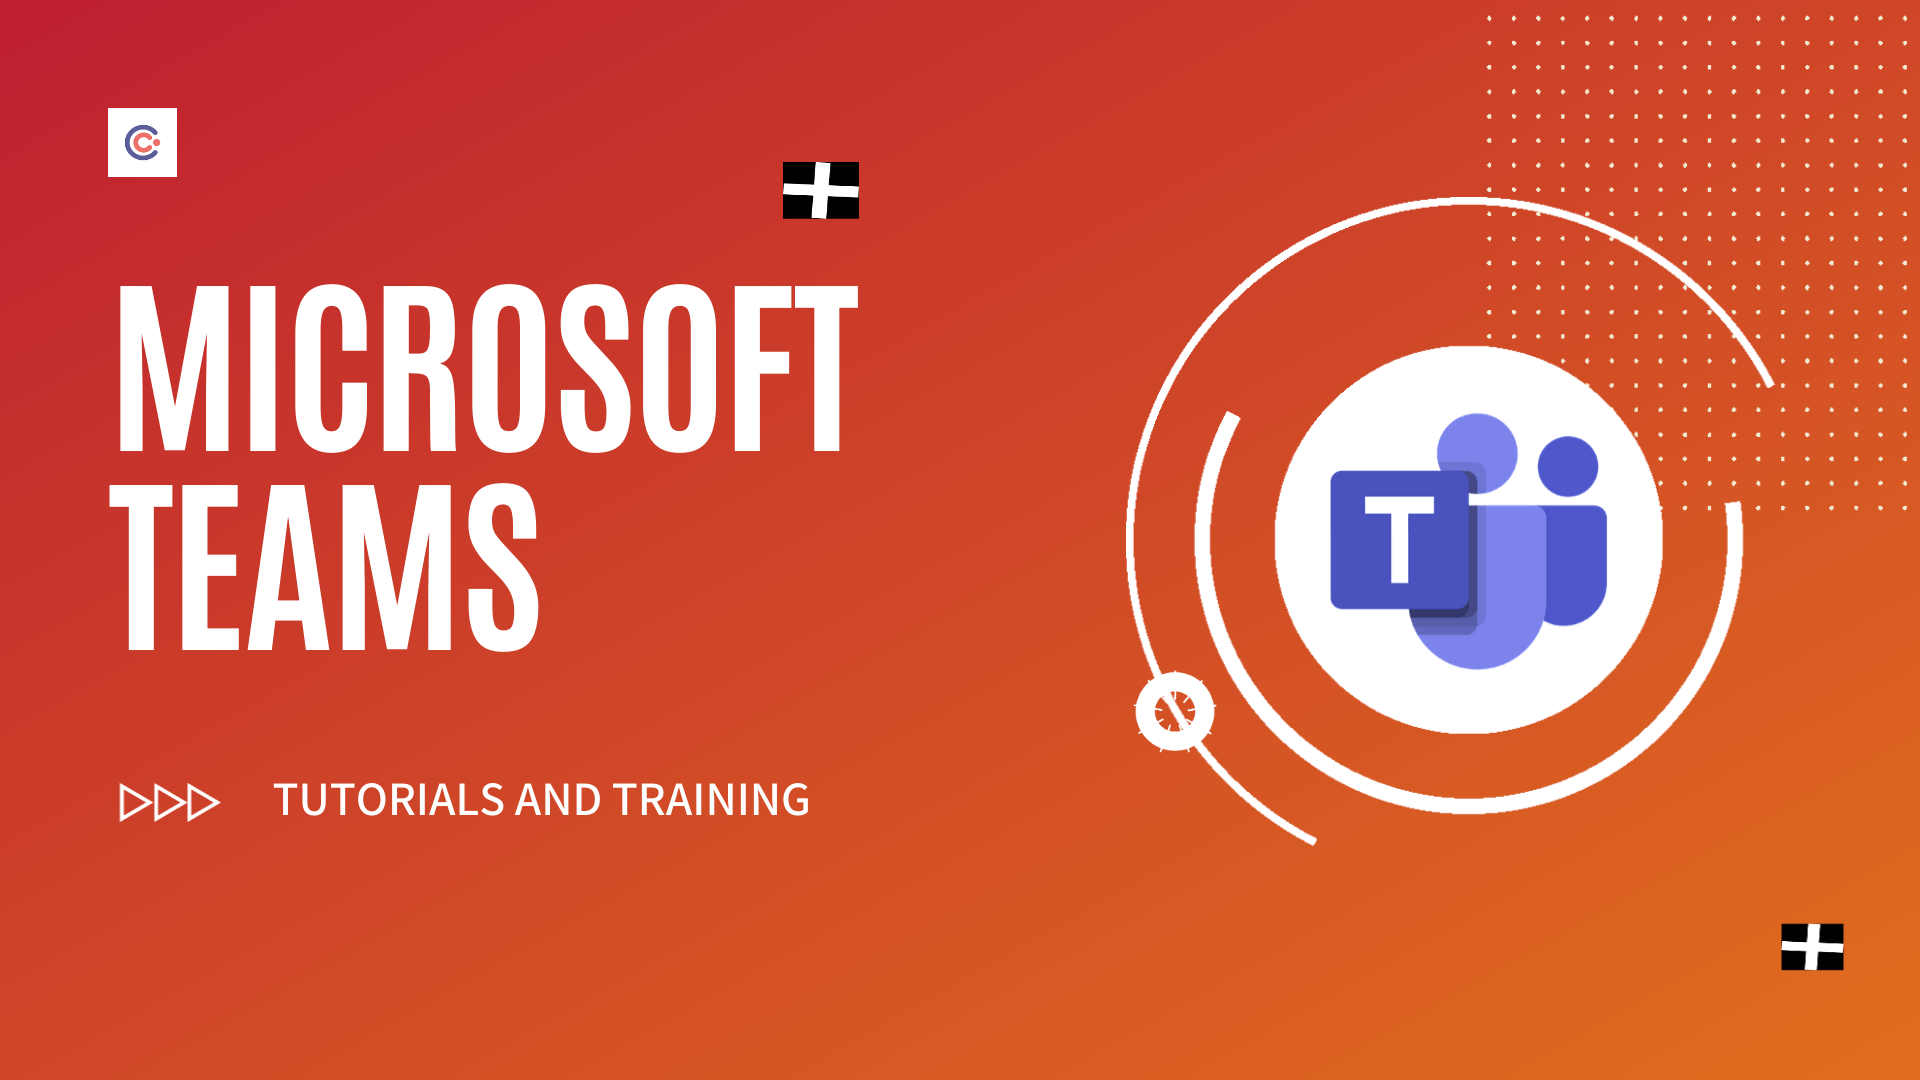 10 Best Microsoft Teams Training & Tutorials - Learn Microsoft Teams Online